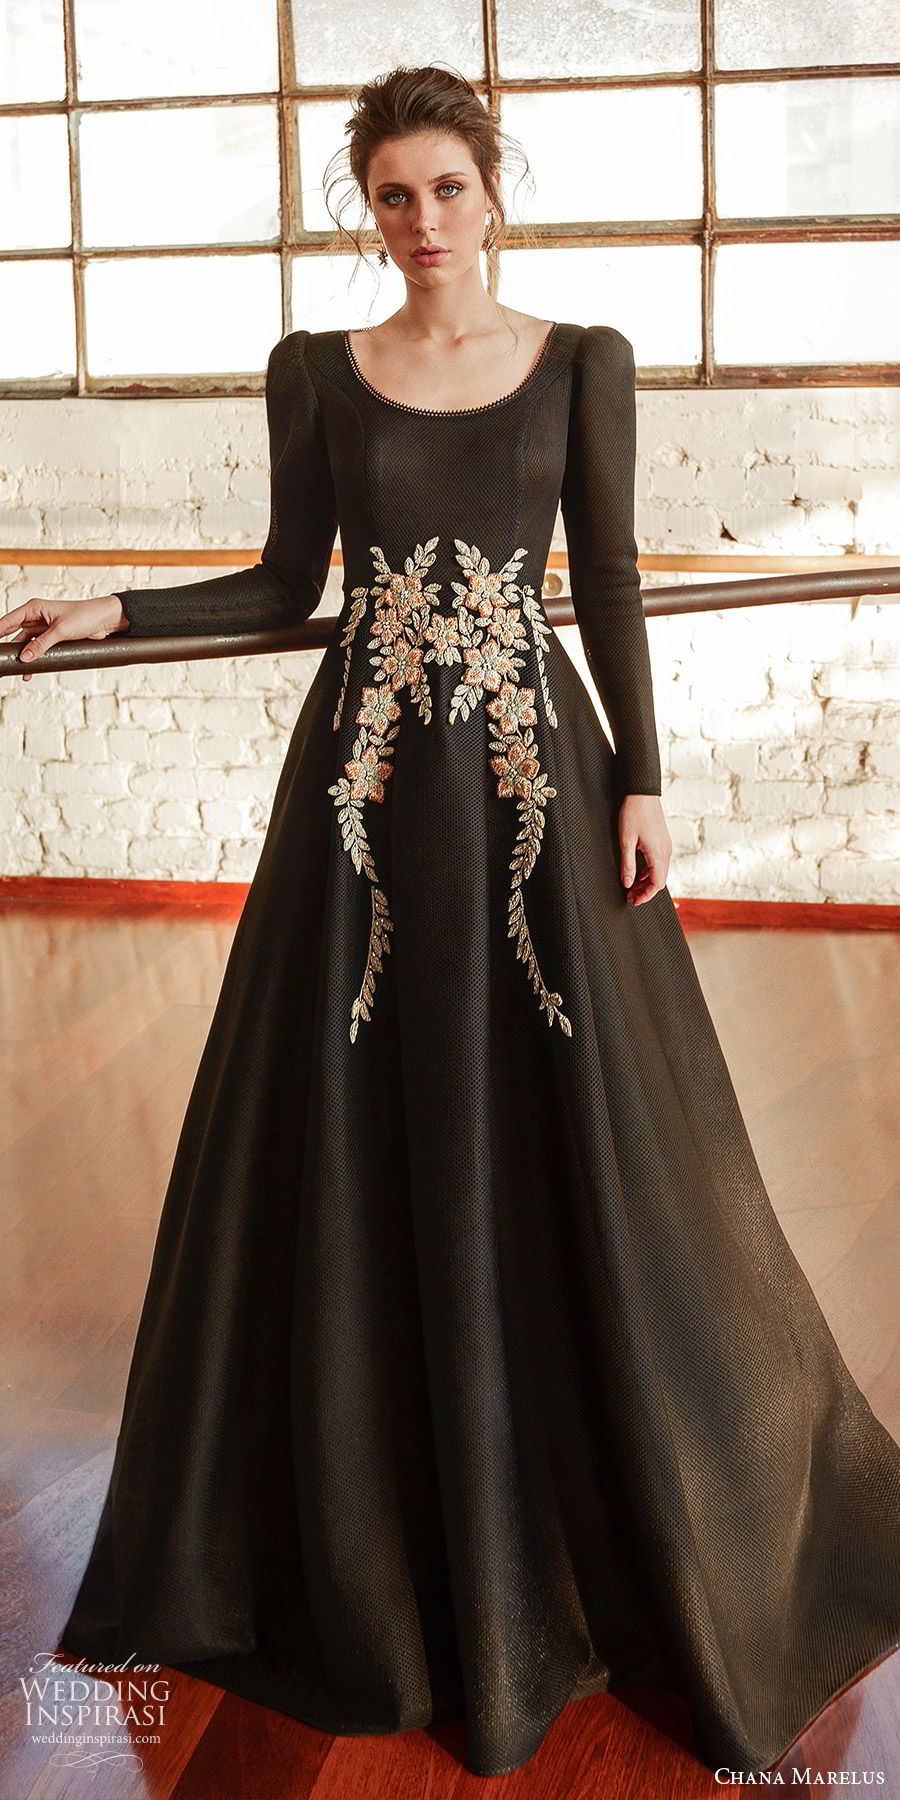 chana marelus fall 2019 bridal long puff sleeves scoop neckline embellished waist a line dress (13) modern romantic black color mv